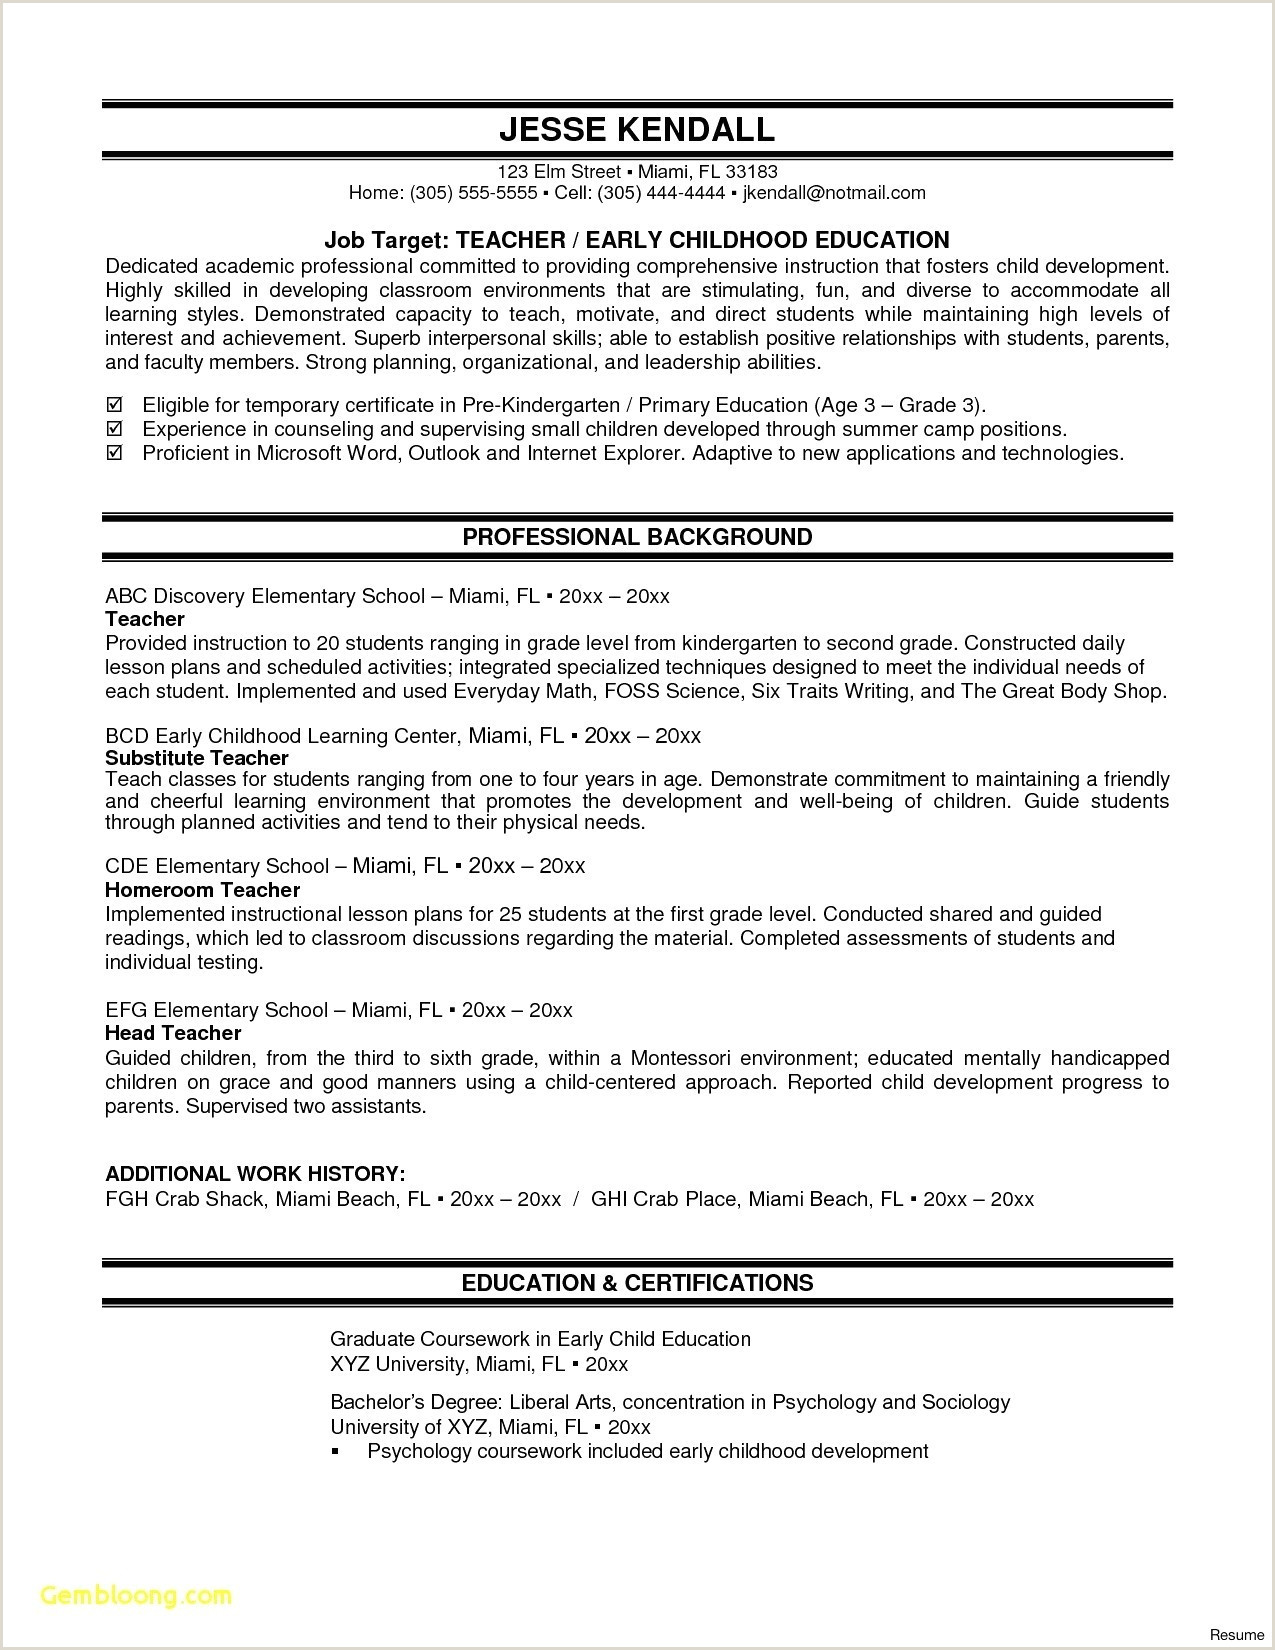 Education and Certifications On Resume Resume Certification Example